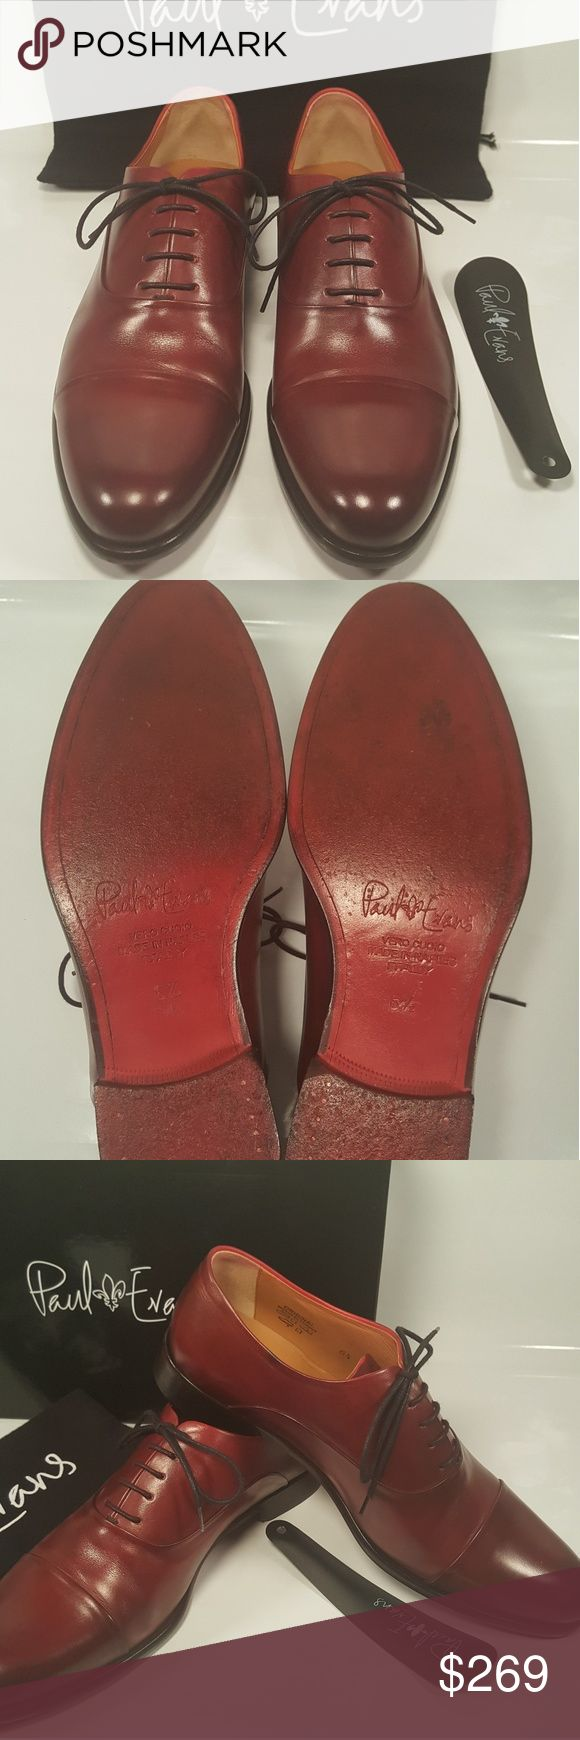 PAUL EVANS OXFORD SHOES MEN'S SIZE 7.5 Pre owned but in very nice condition Paul Evans Cap Toe Oxfords Italian Leather Shoes size 7.5  (Color Oxblood ) include original box, dust bag and shoe horn. Paul Evans Shoes Oxfords & Derbys #oxfordshoesoutfit